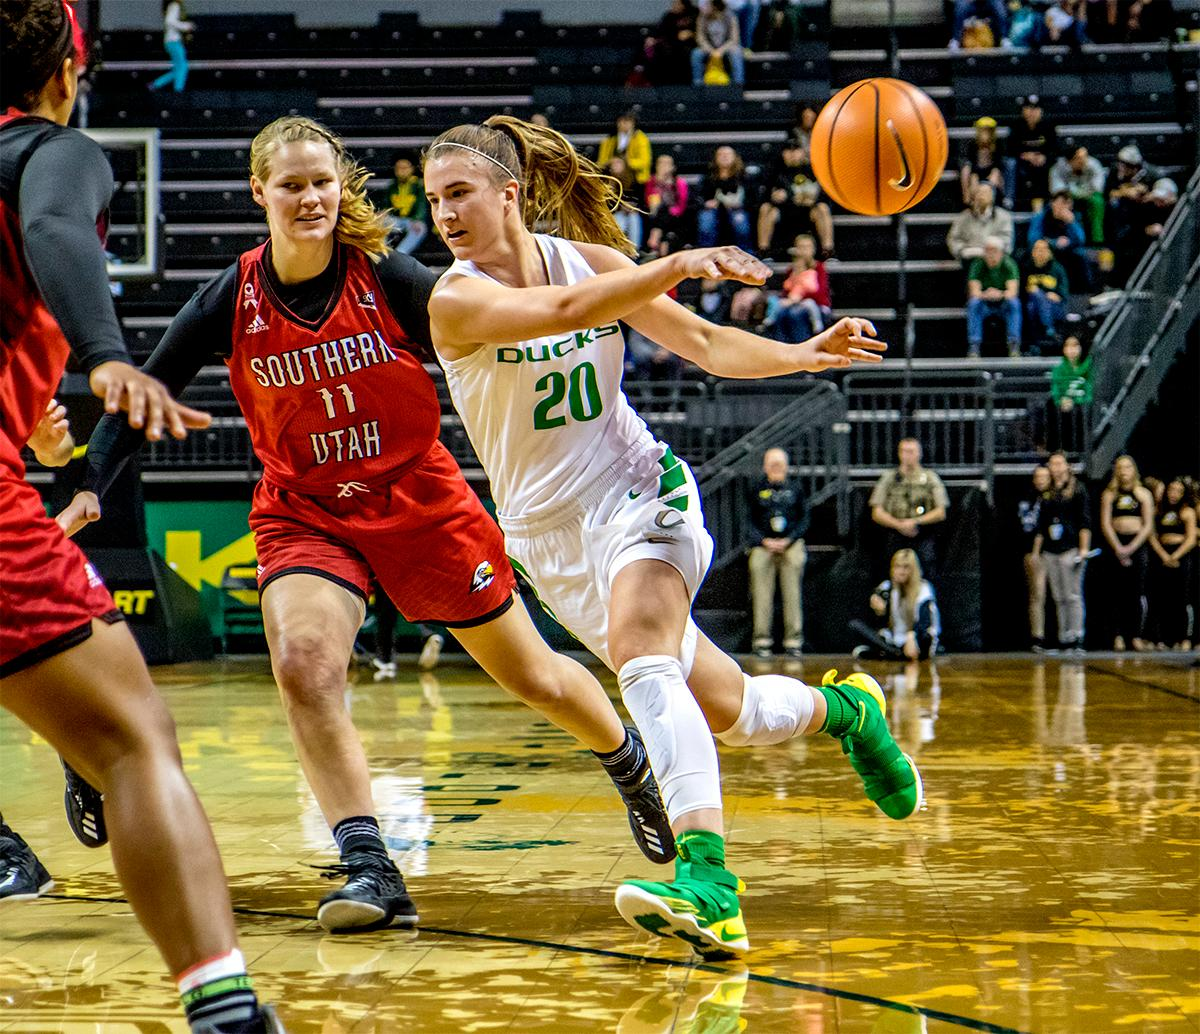 The Duck's Sabrina Ionescu (#20) tosses the ball aside to a teammate. The University of Oregon Ducks women basketball team defeated the Southern Utah Thunderbirds 98-38 in Matthew Knight Arena Saturday afternoon. The Ducks had four players in double-digits: Ruthy Hebard with 13; Mallory McGwire with 10; Lexi Bando with 17 which included four three-pointers; and Sabrina Ionescu with 16 points. The Ducks overwhelmed the Thunderbirds, shooting 50% in field goals to South Utah's 26.8%, 53.8% in three-pointers to 12.5%, and 85.7% in free throws to 50%. The Ducks, with an overall record of 8-1, and coming into this game ranked 9th, will play their next home game against Ole Miss on December 17. Photo by August Frank, Oregon News Lab